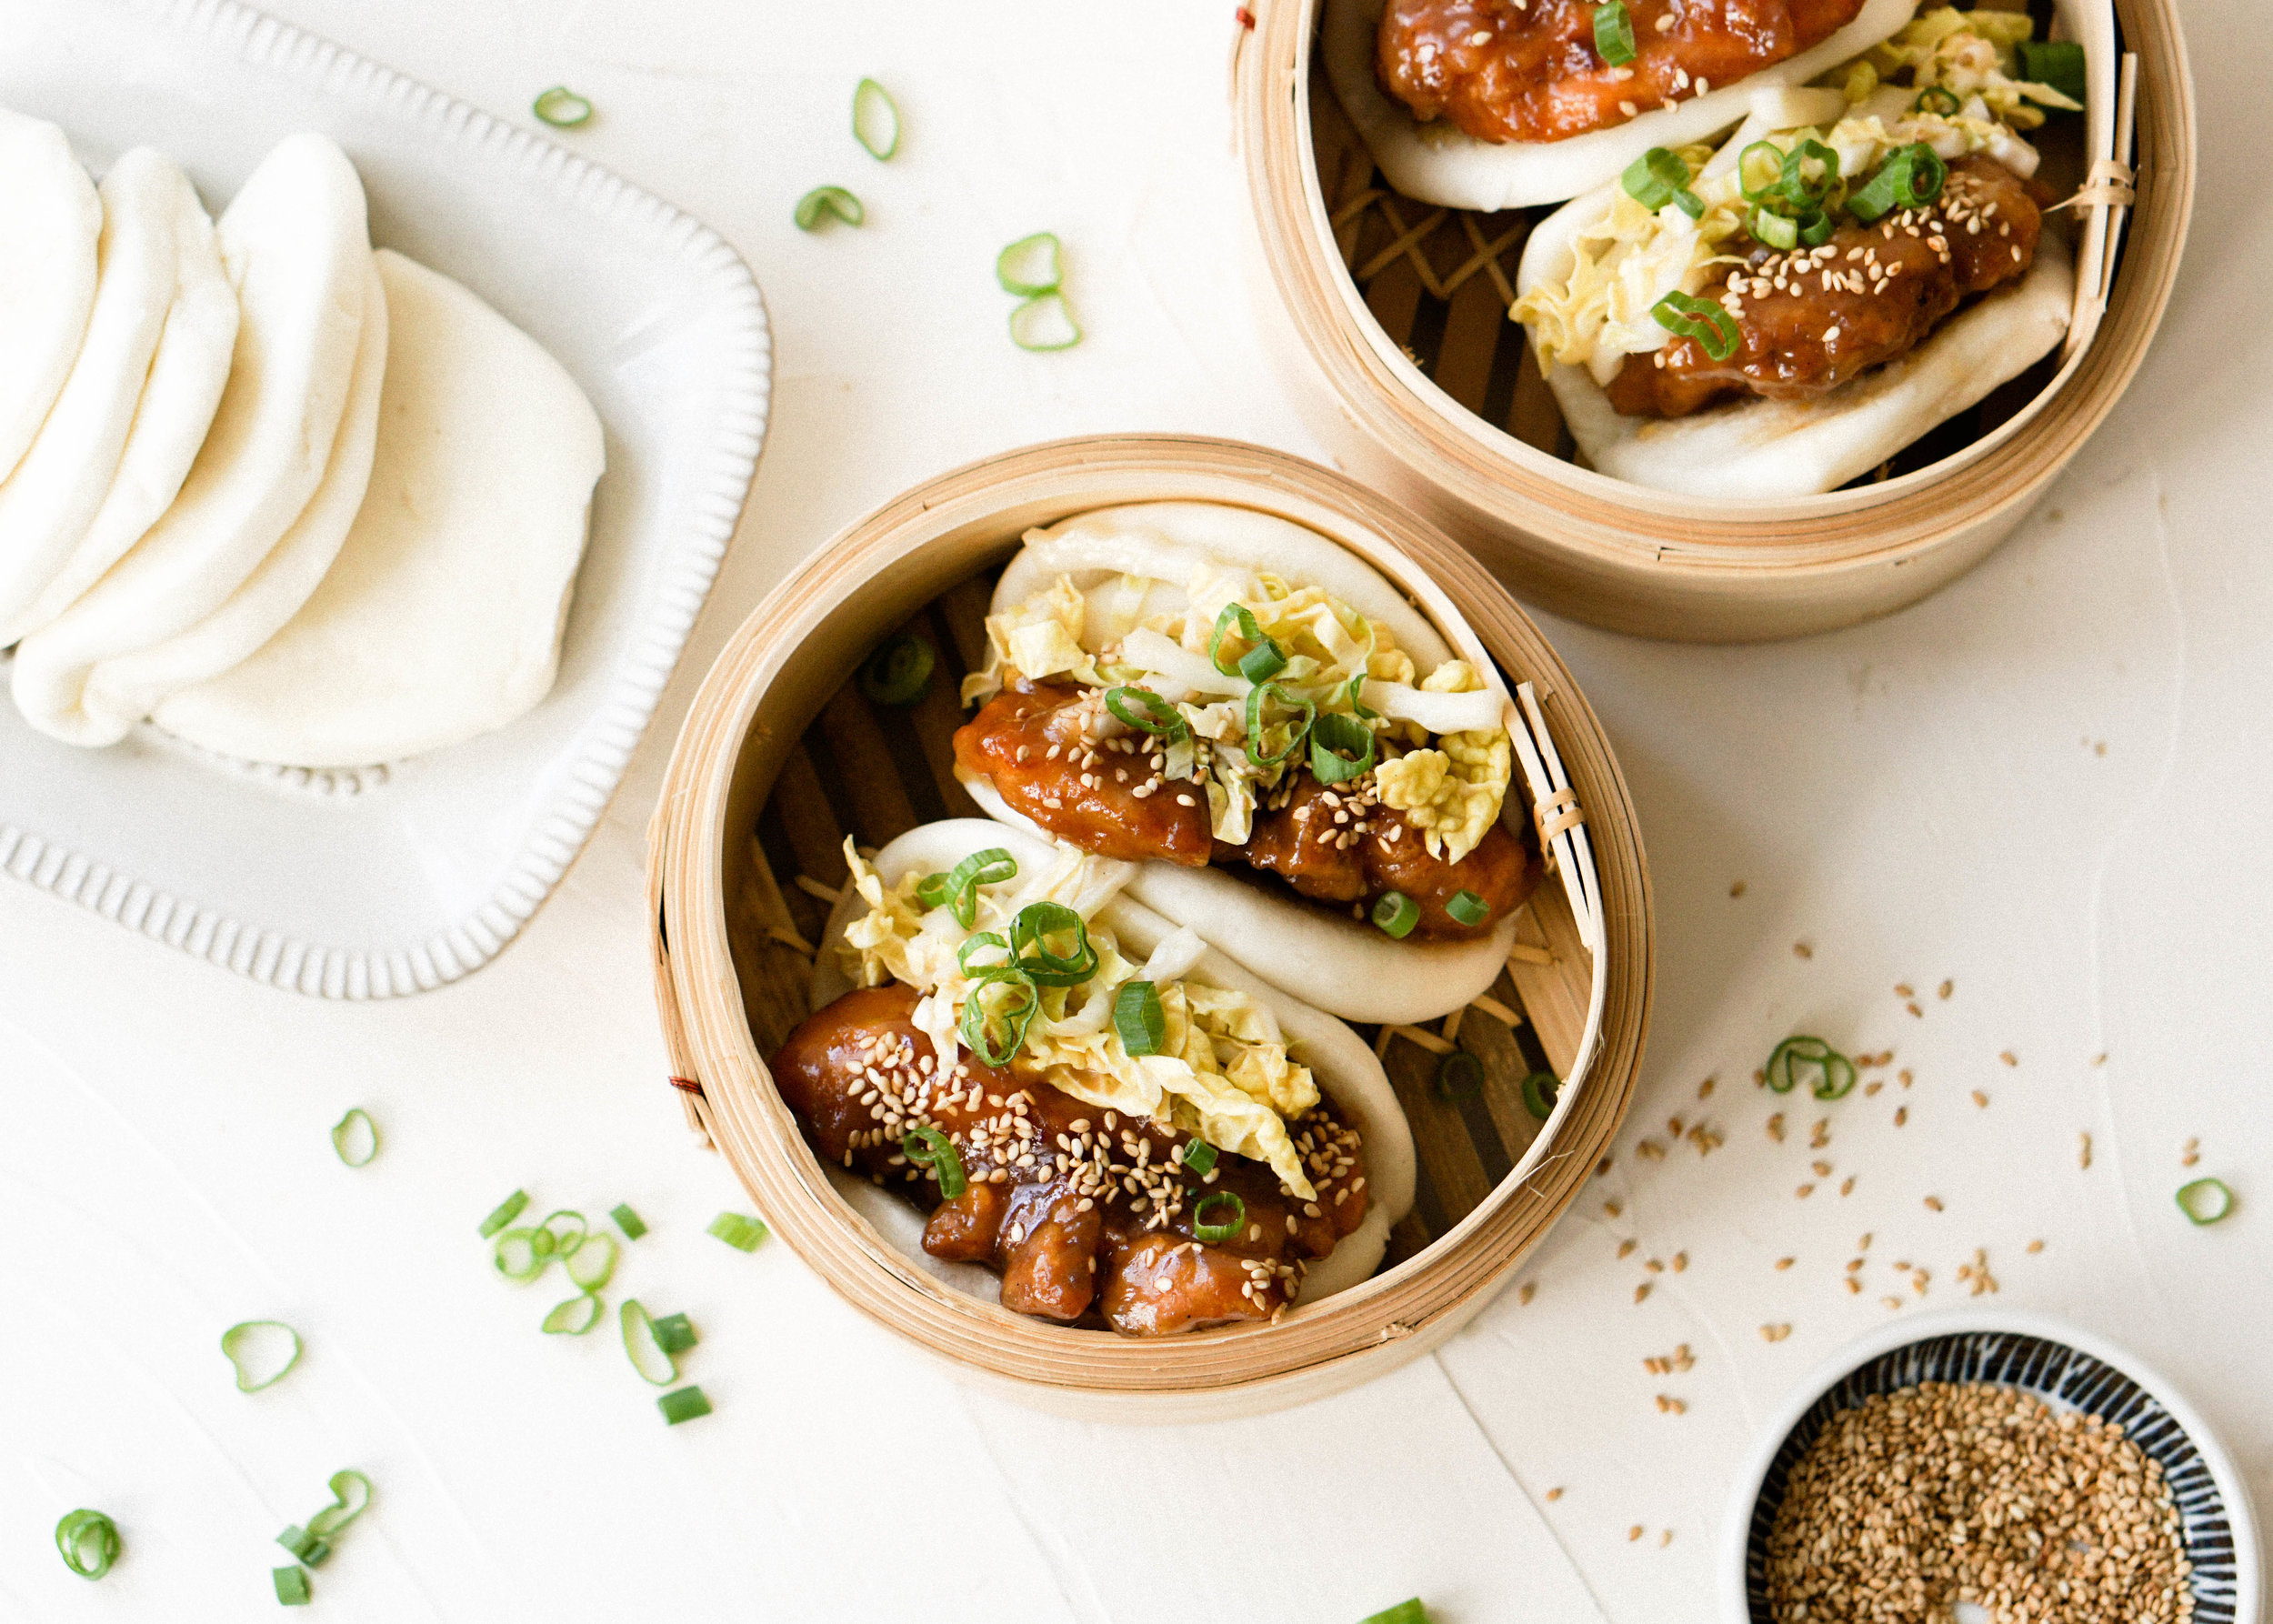 Sesame Chicken Gua Bao - Eat Cho Food